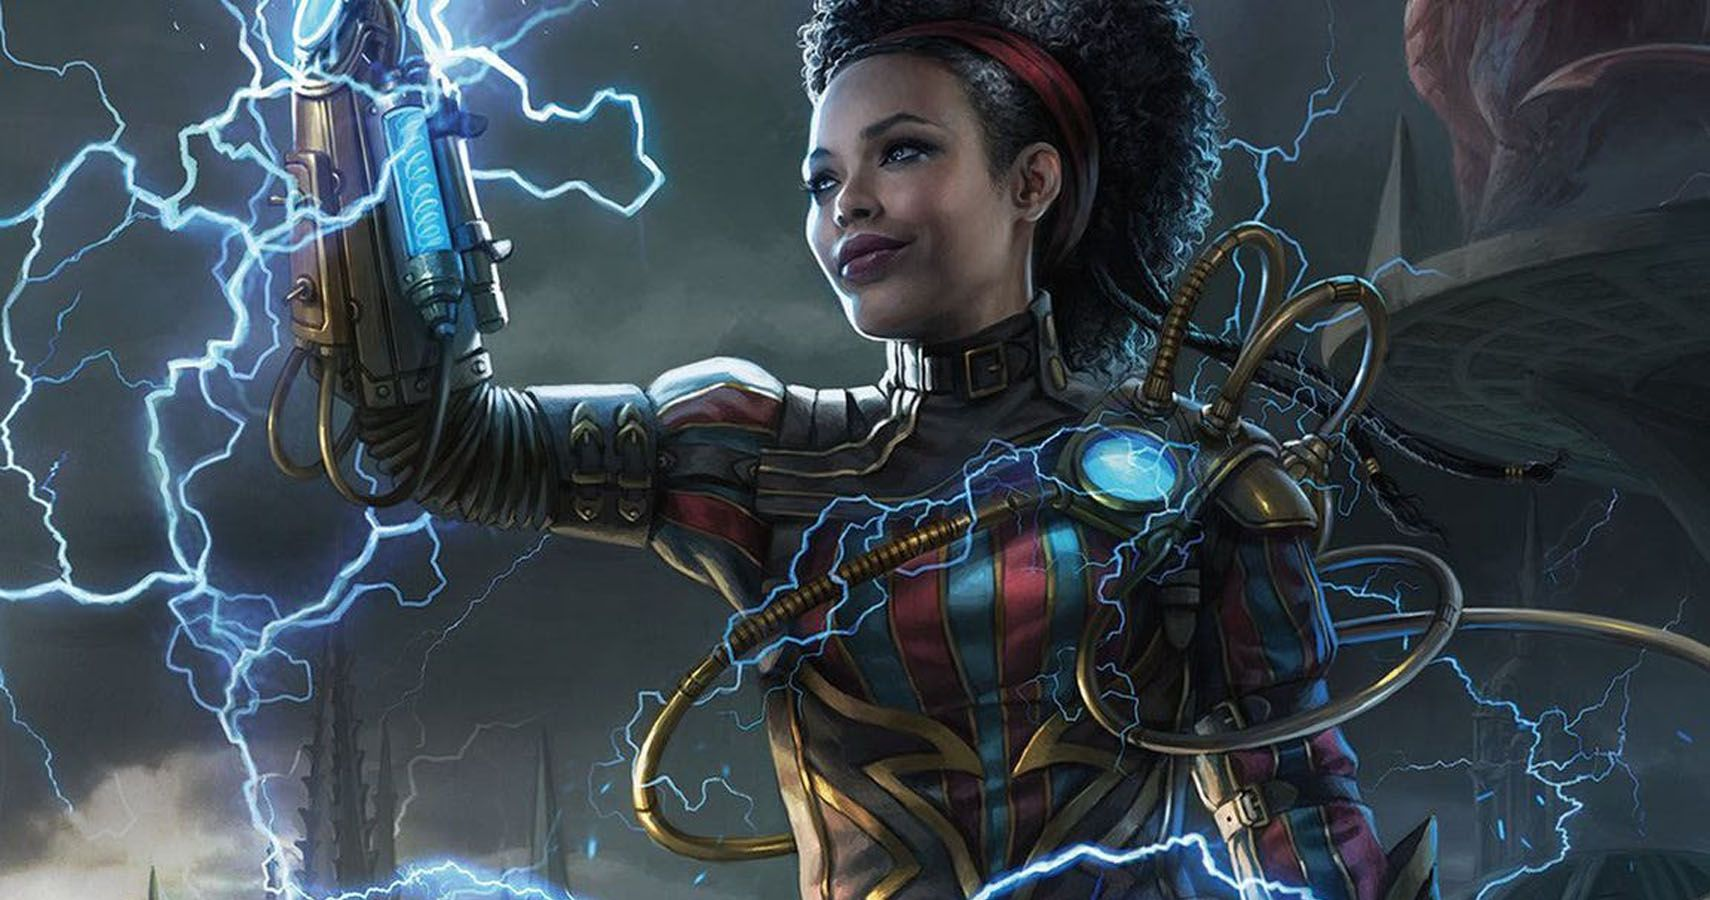 10 Most Powerful Monsters From The Guildmaster S Guide To Ravnica Expansion Dungeons And Dragons The orzhov guild is founded on the beliefs that wealth is power, that structure breeds wealth, and that guilt creates structure. 10 most powerful monsters from the